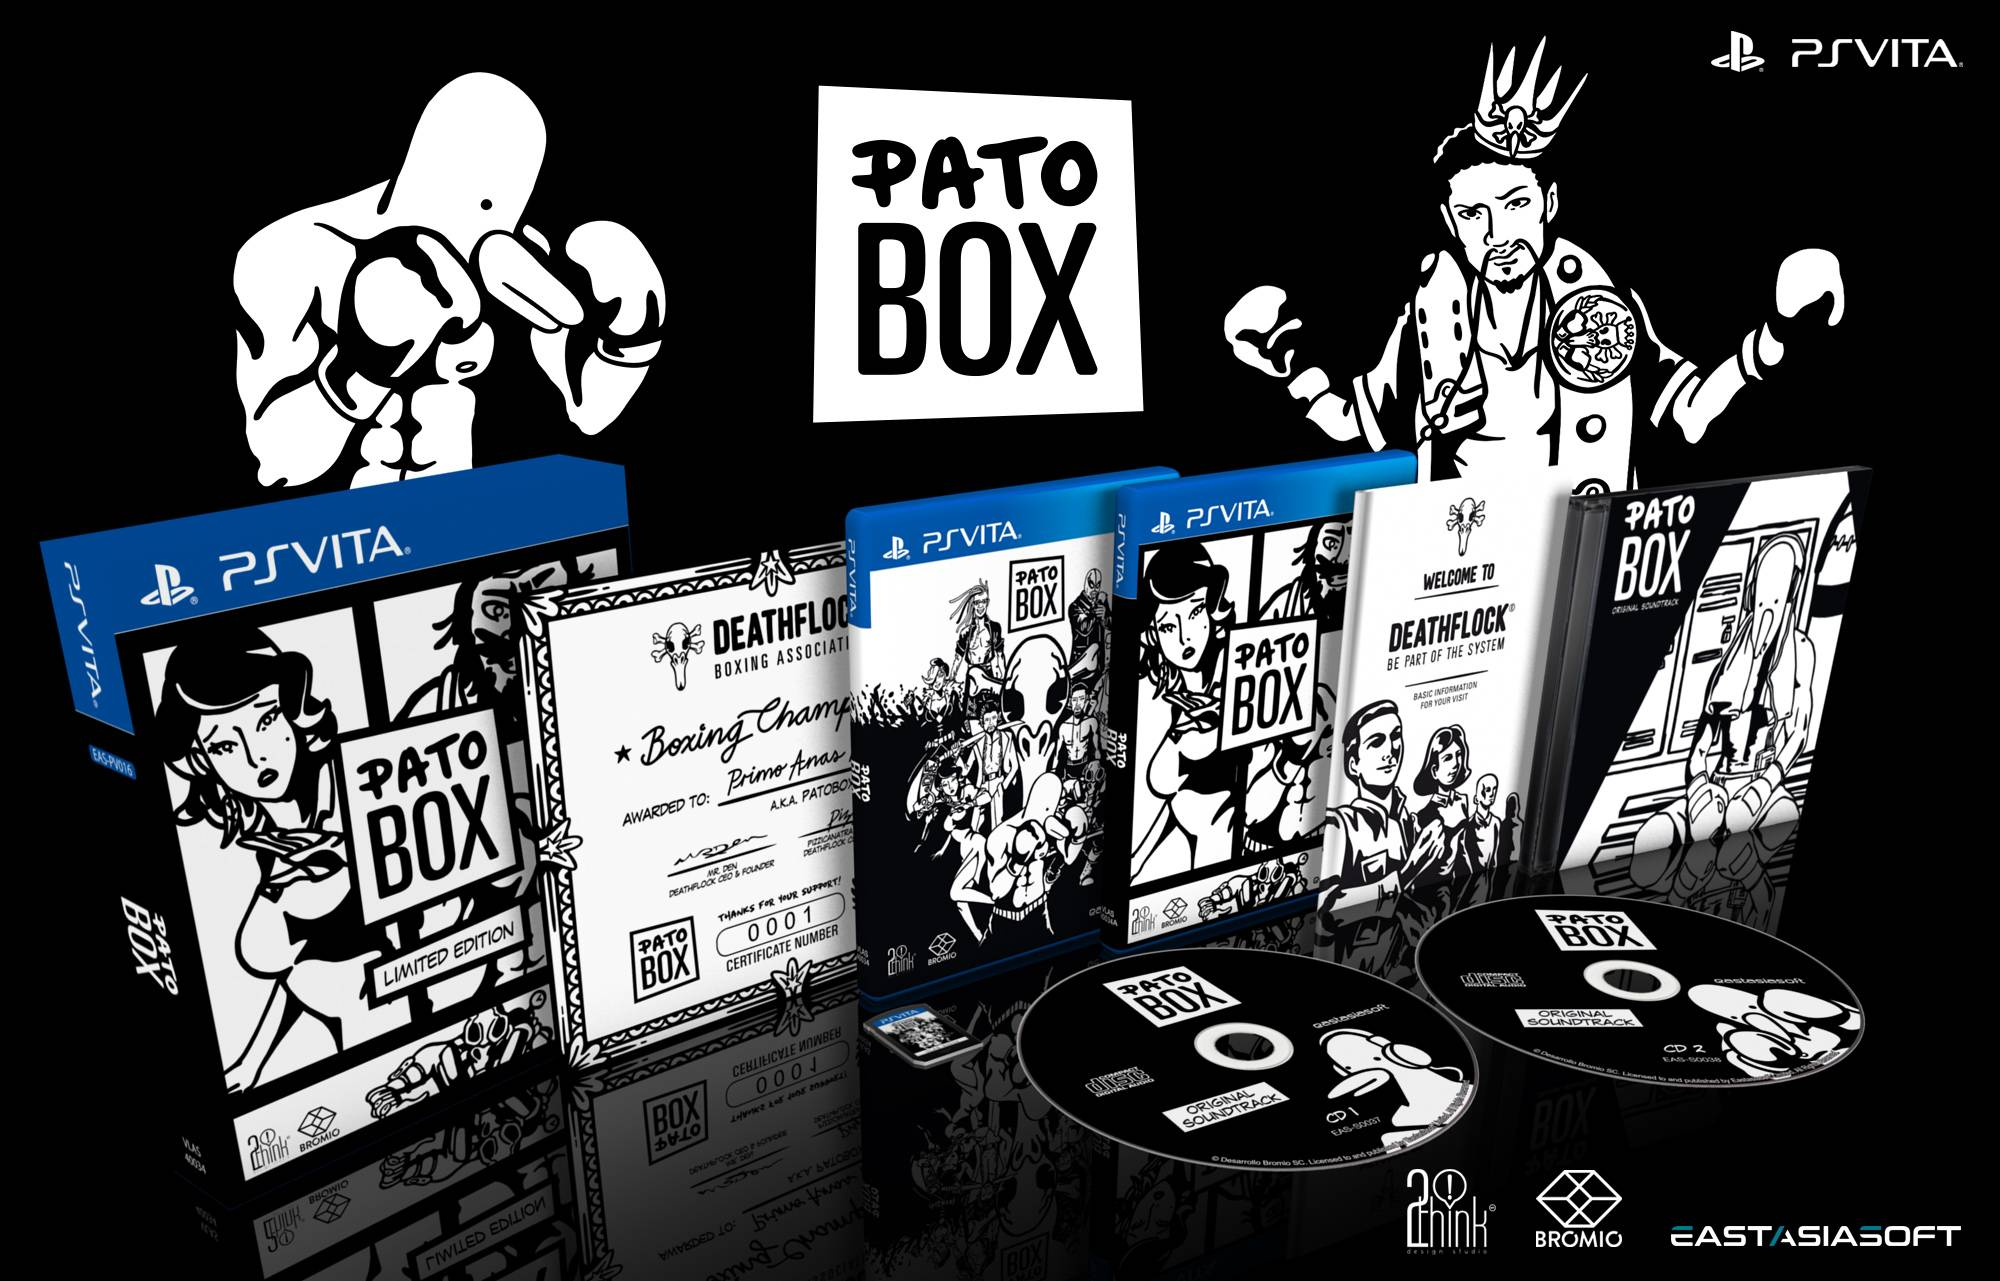 Pato Box PS Vita Limited Edition